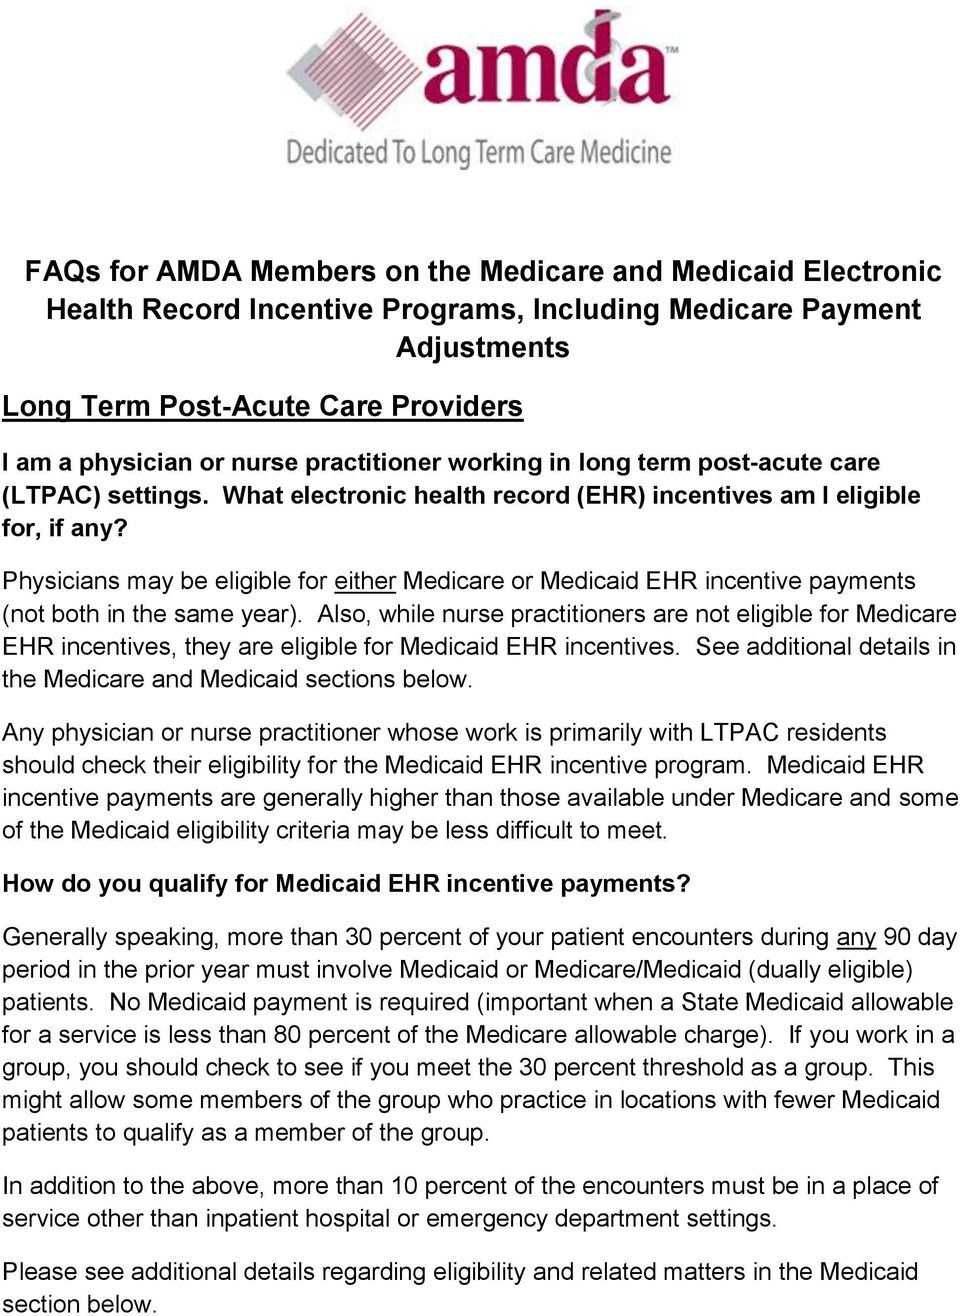 Physicians may be eligible for either Medicare or Medicaid EHR incentive payments (not both in the same year).